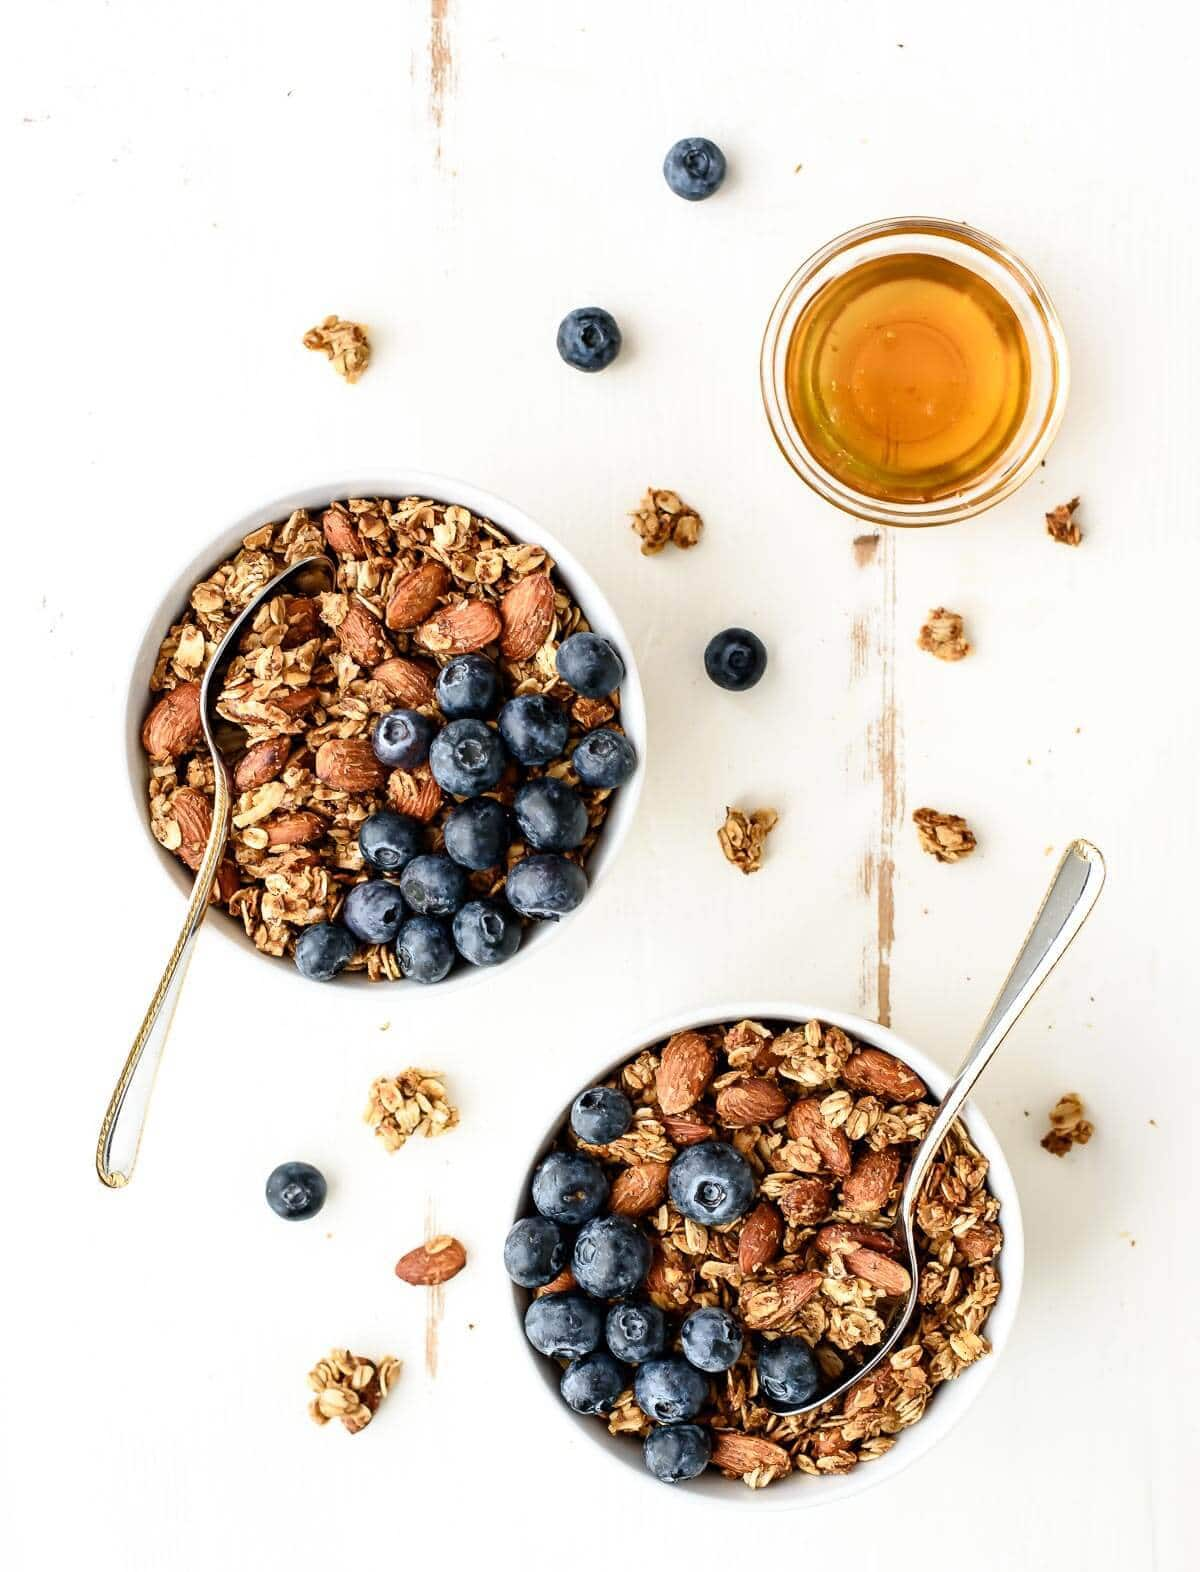 This Honey Almond Flax Granola is the BEST healthy granola recipe! Made with whole grains, super food flaxseeds, and honey, it tastes great and is great for you too.